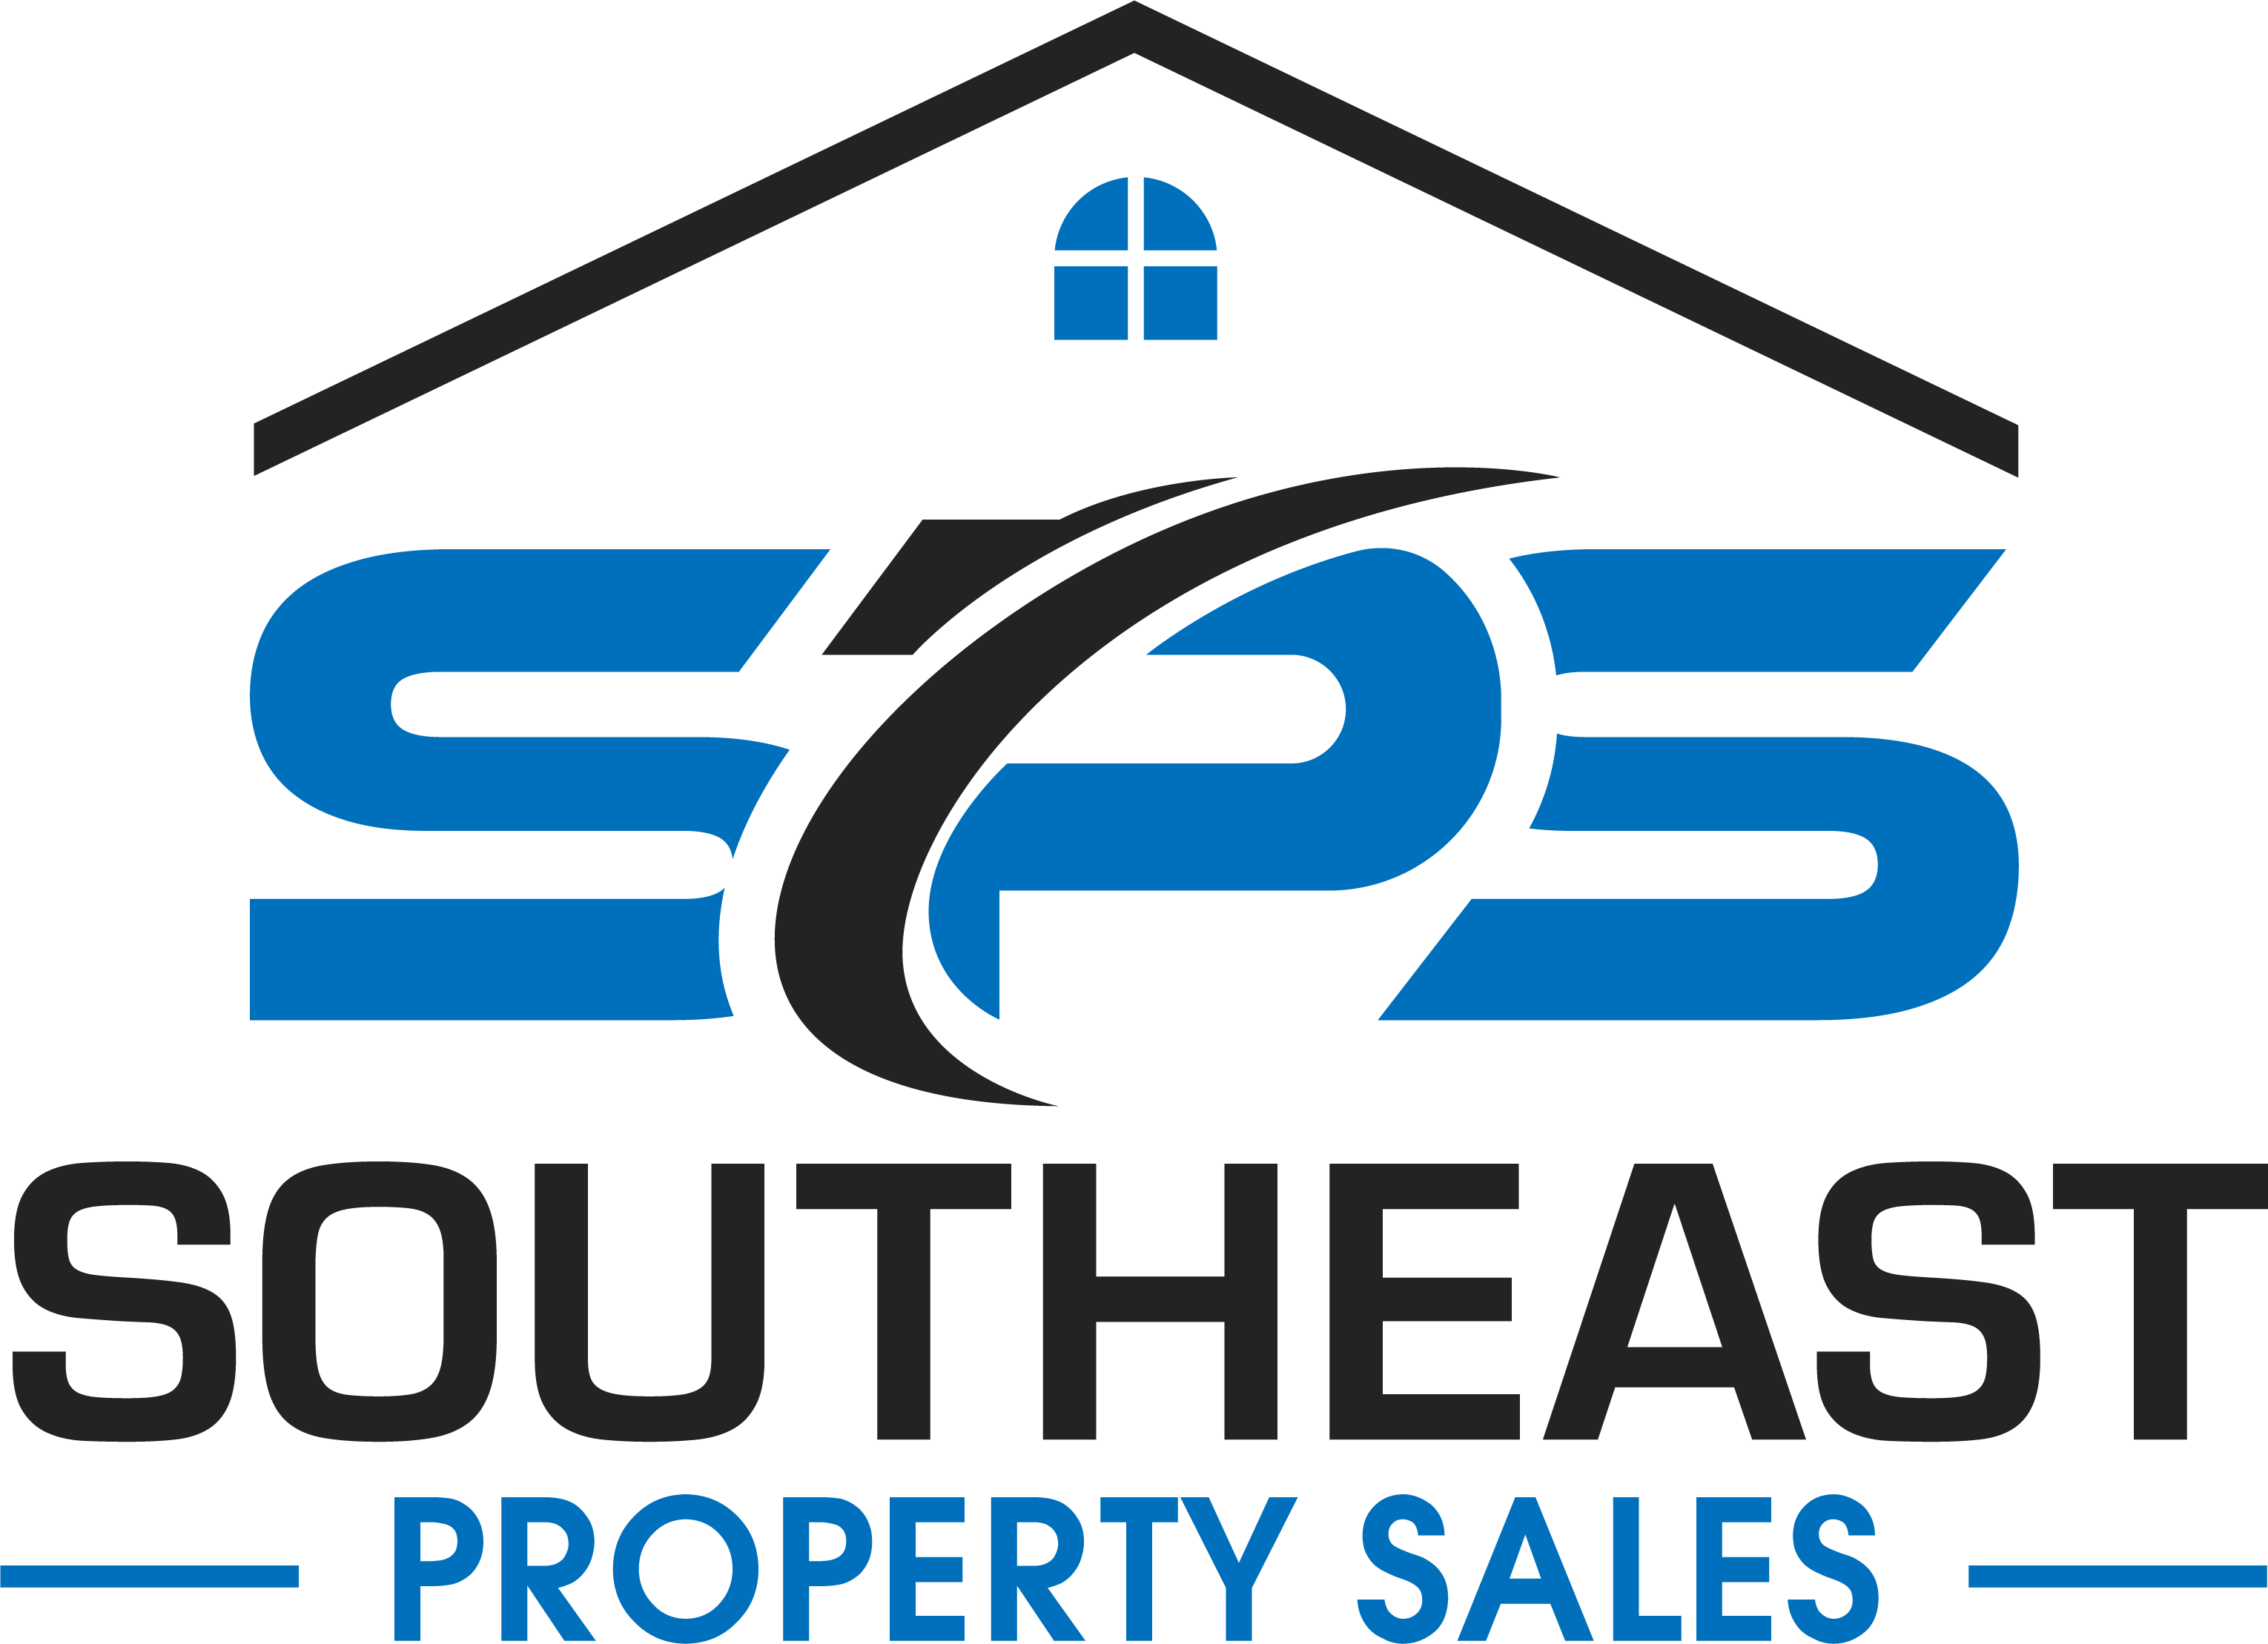 Southeast Property Sales